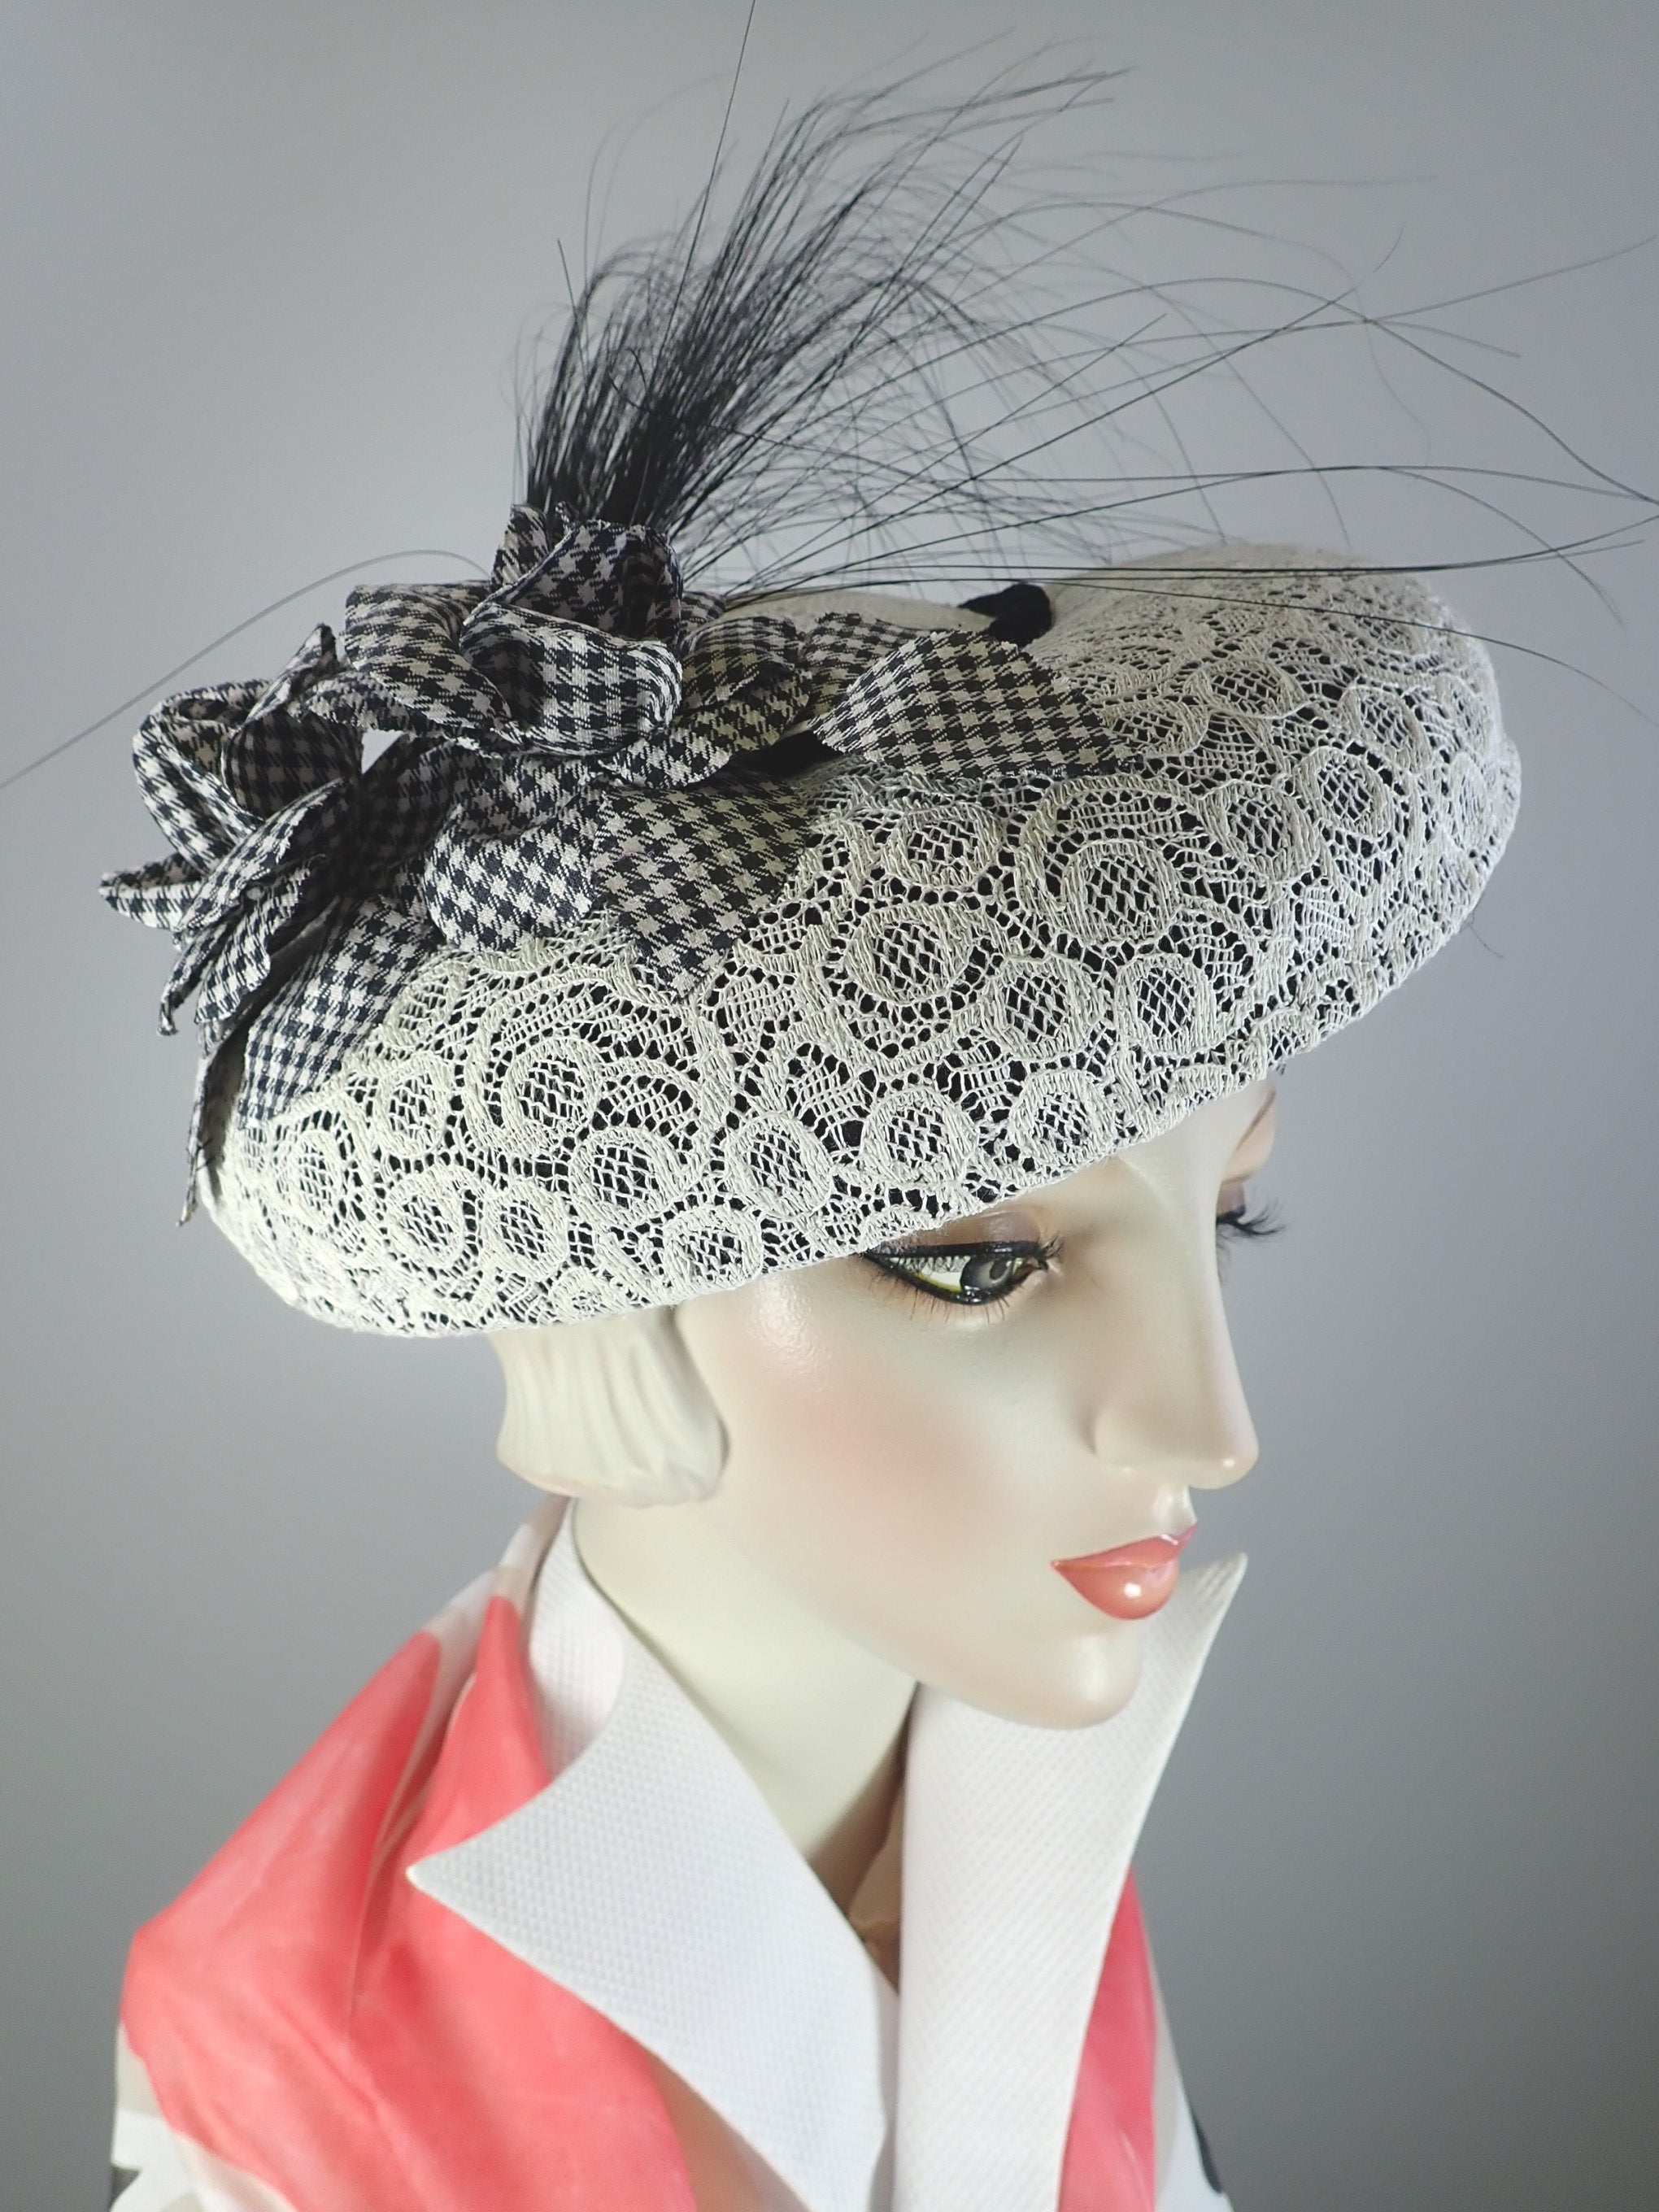 Vintage lace tilt hat with black and white flowers